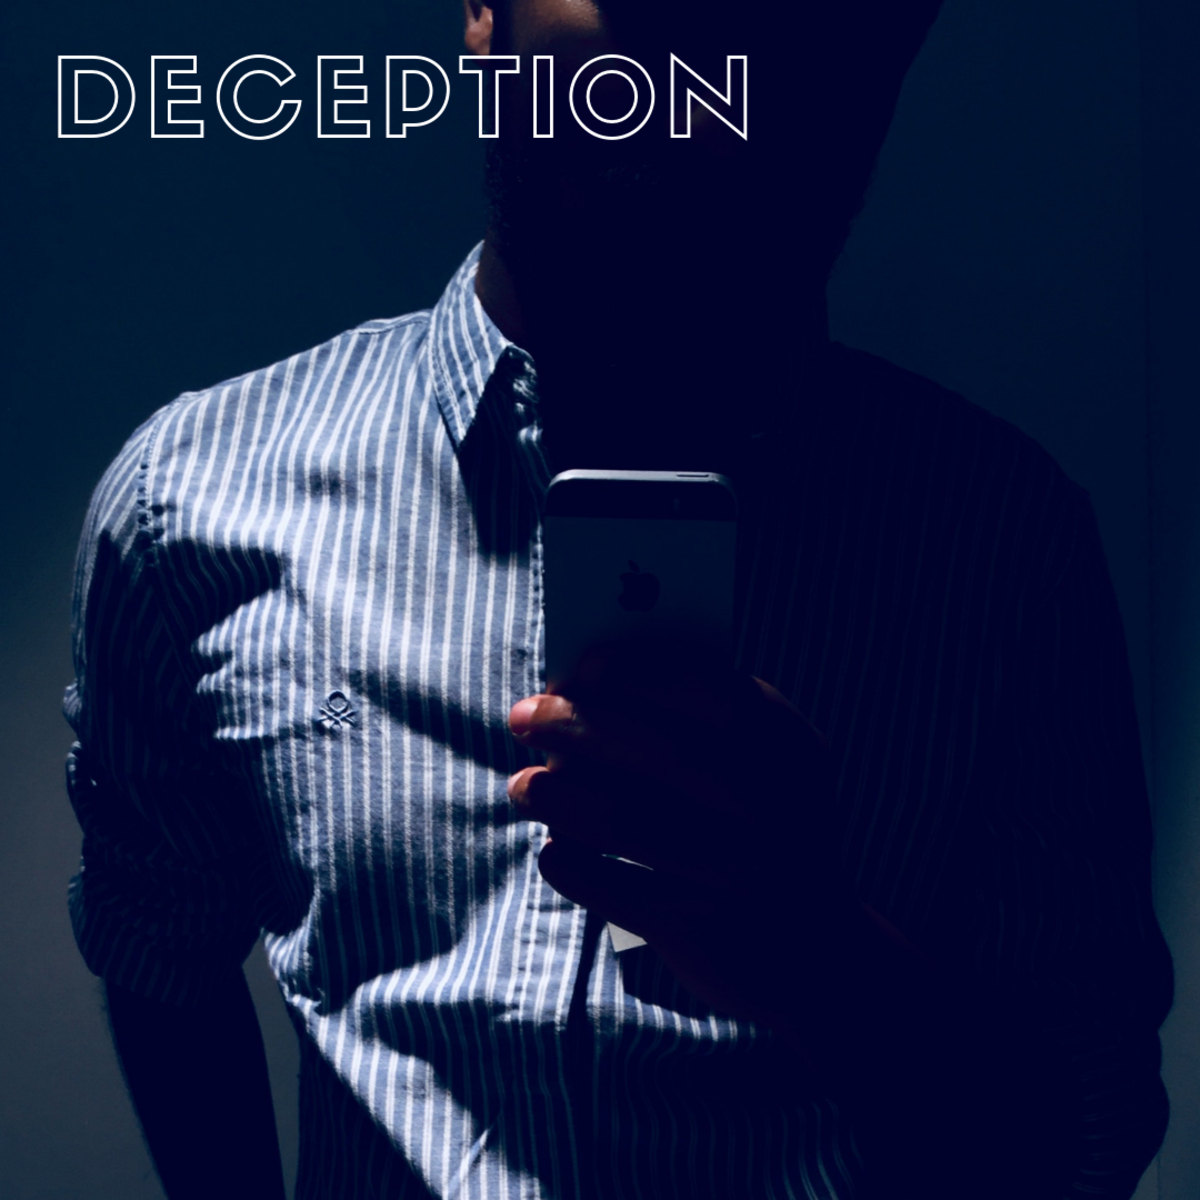 Things cheaters have in common: the tendency towards deception.